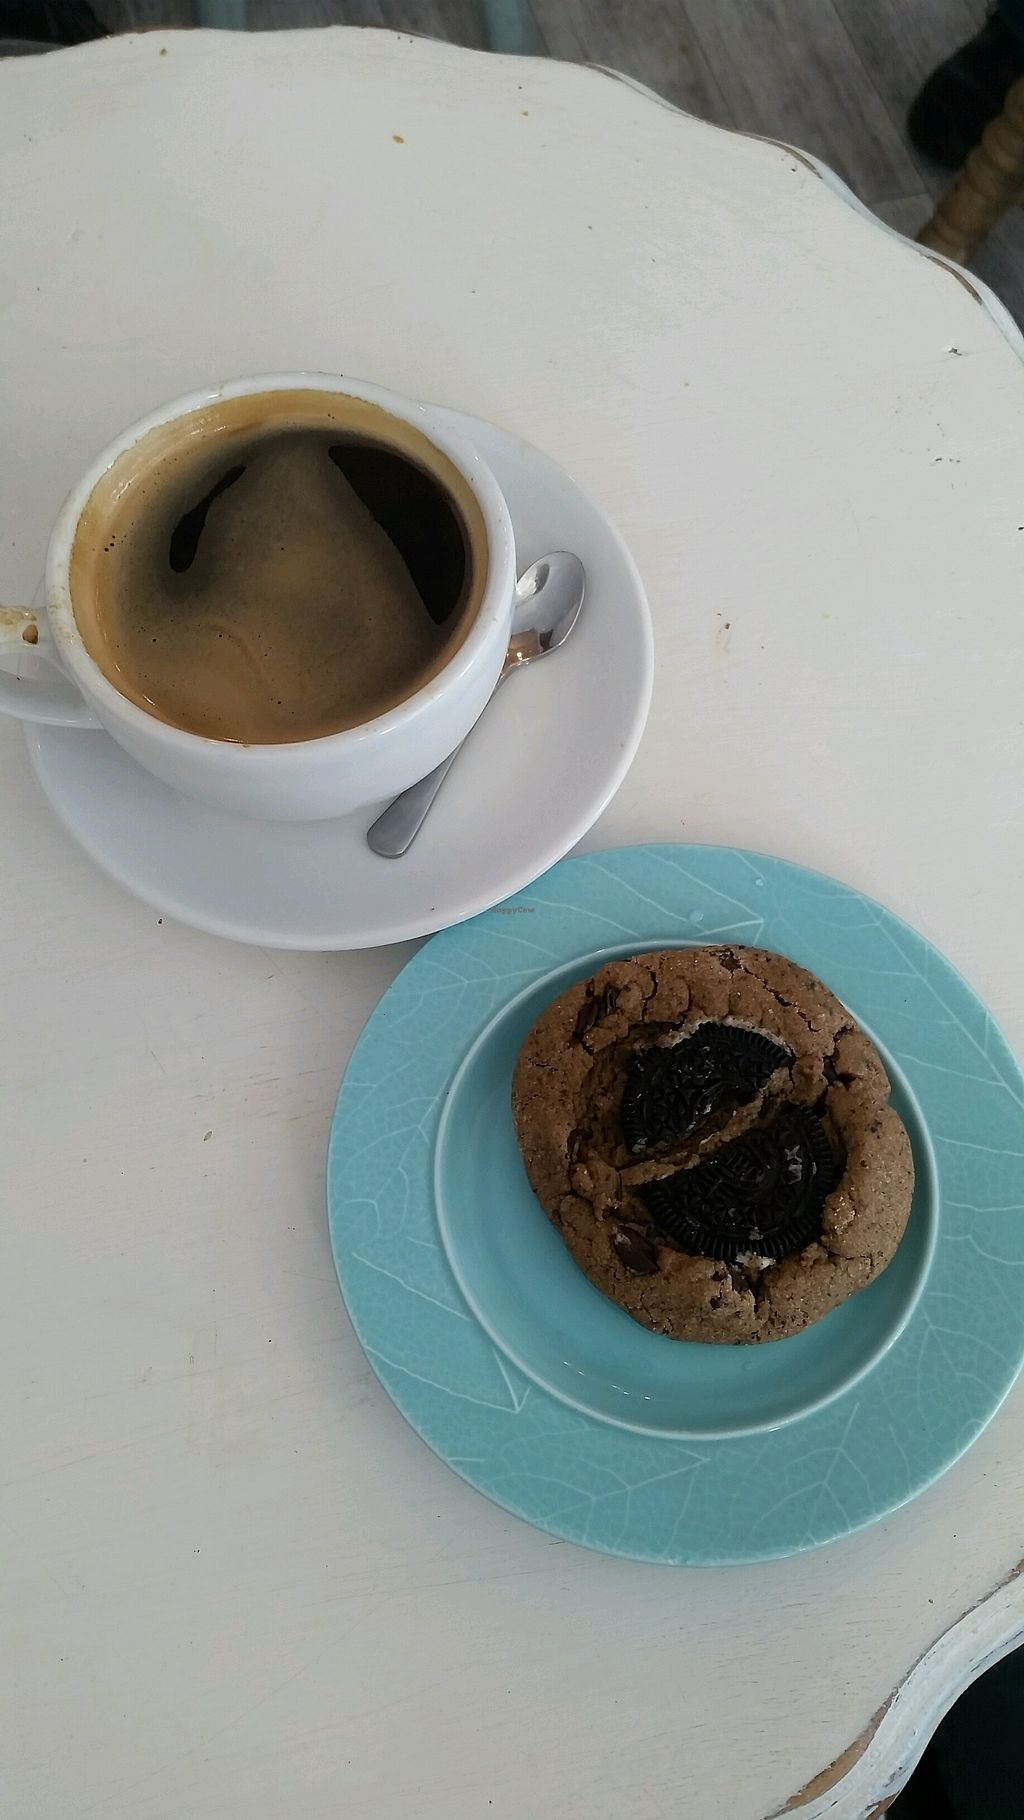 """Photo of Nicoletta's Cake Boutique  by <a href=""""/members/profile/AndyTheVWDude"""">AndyTheVWDude</a> <br/>Good coffee & a Cookies & Cream cookie ~ Yum! <br/> November 25, 2017  - <a href='/contact/abuse/image/84028/328920'>Report</a>"""